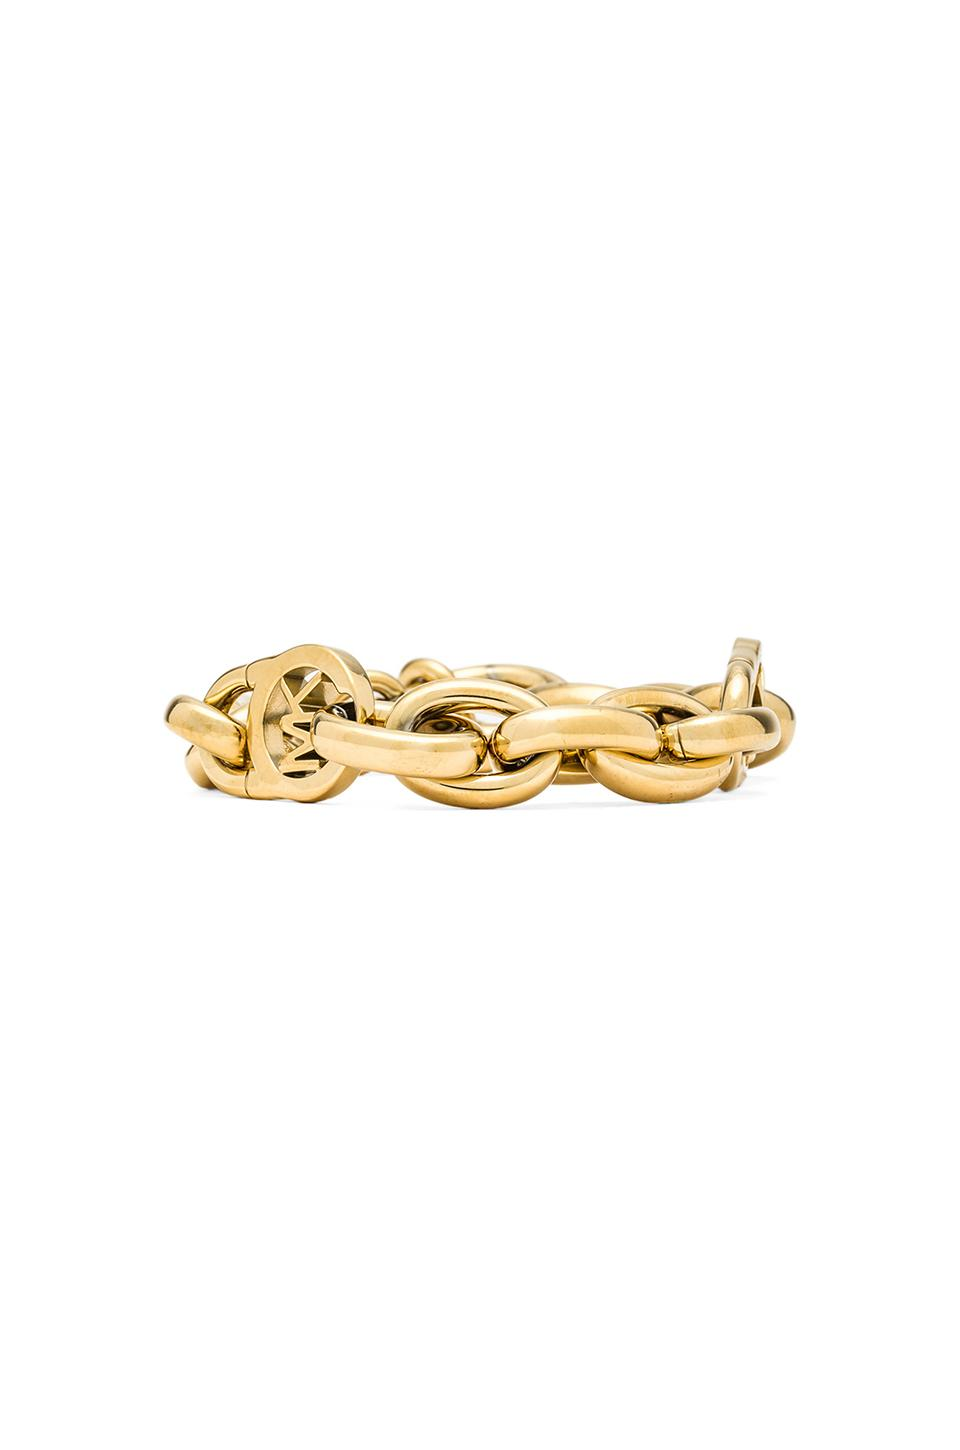 Michael Kors Chain Bracelet in Gold | REVOLVE